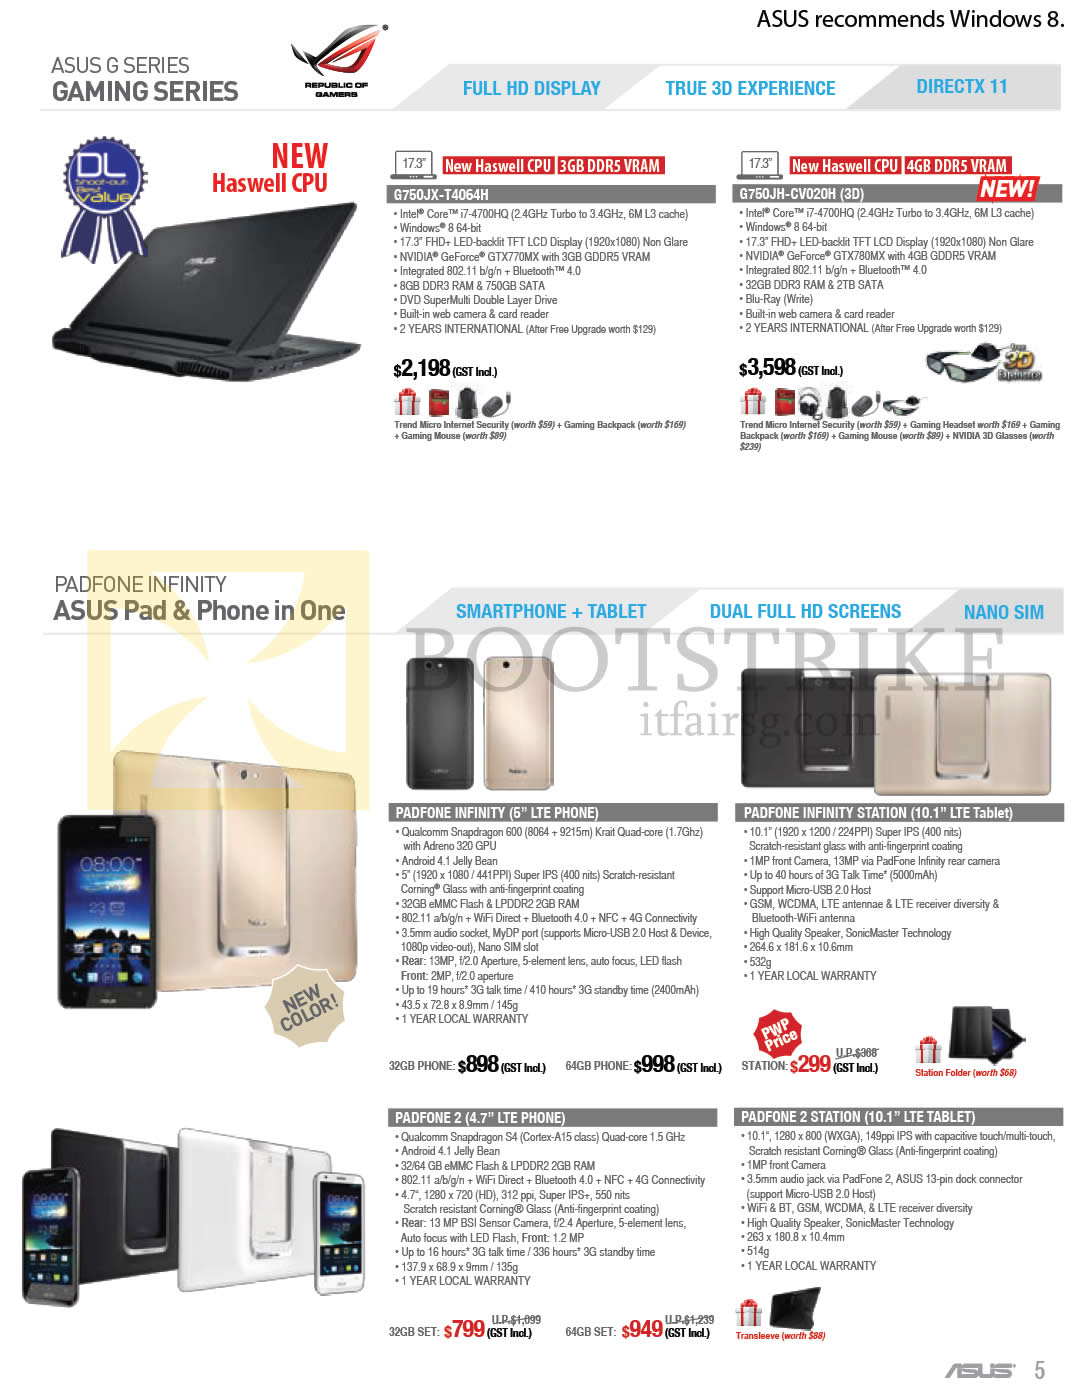 COMEX 2013 price list image brochure of ASUS Notebooks G Series G750JX-T4064H, G750JH-CV020H, SMARTPHONE PADFONE INFINITY, STATION, PADFONE 2, STATION